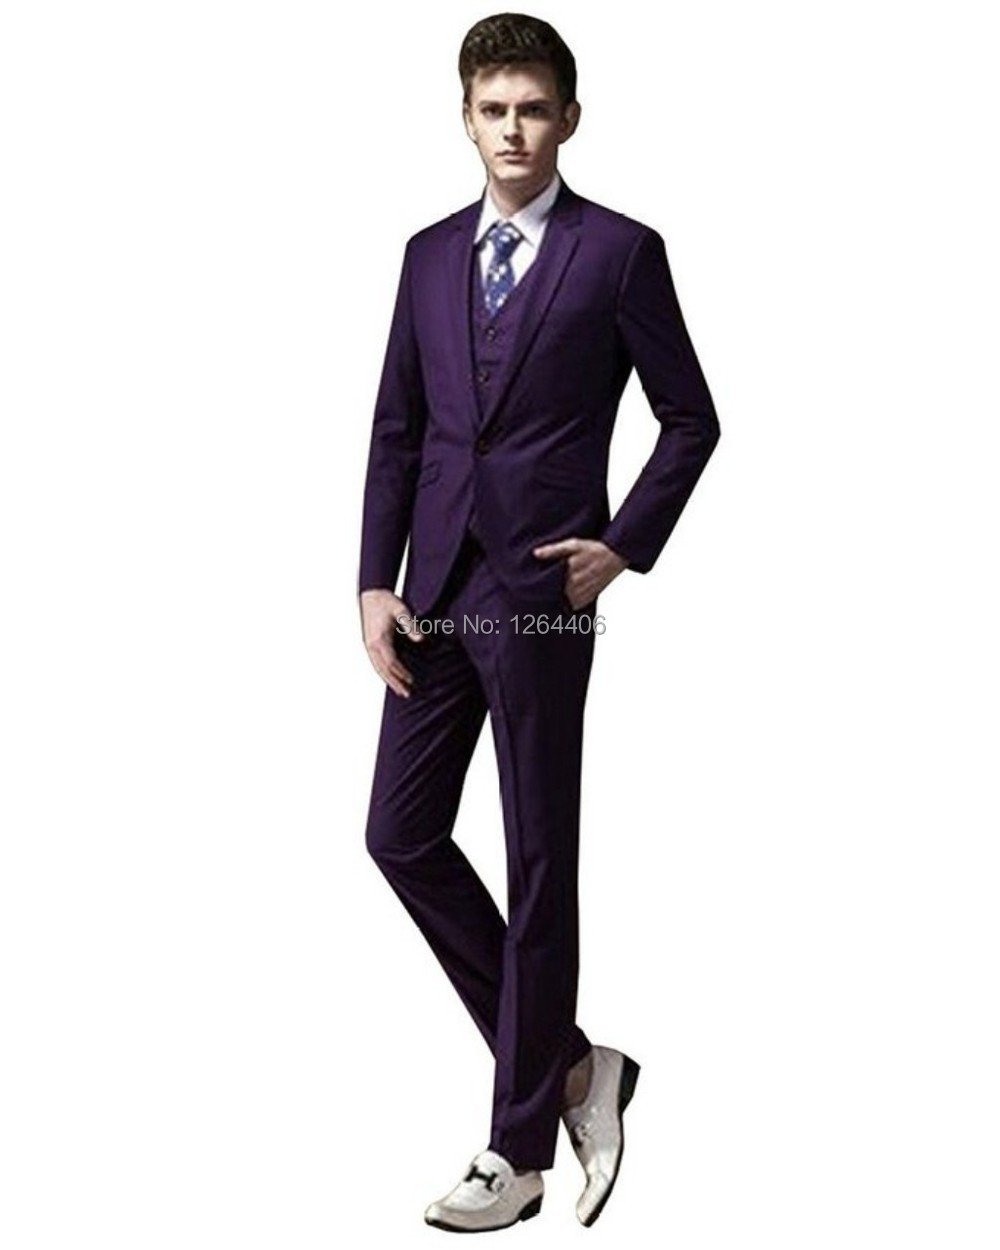 Self-Conscious Burgundy With Black Lapel Mens Dinner Party Prom Suits Groom Tuxedos Groomsmen Wedding Blazer Suits No:220 Fixing Prices According To Quality Of Products jacket+pants+tie